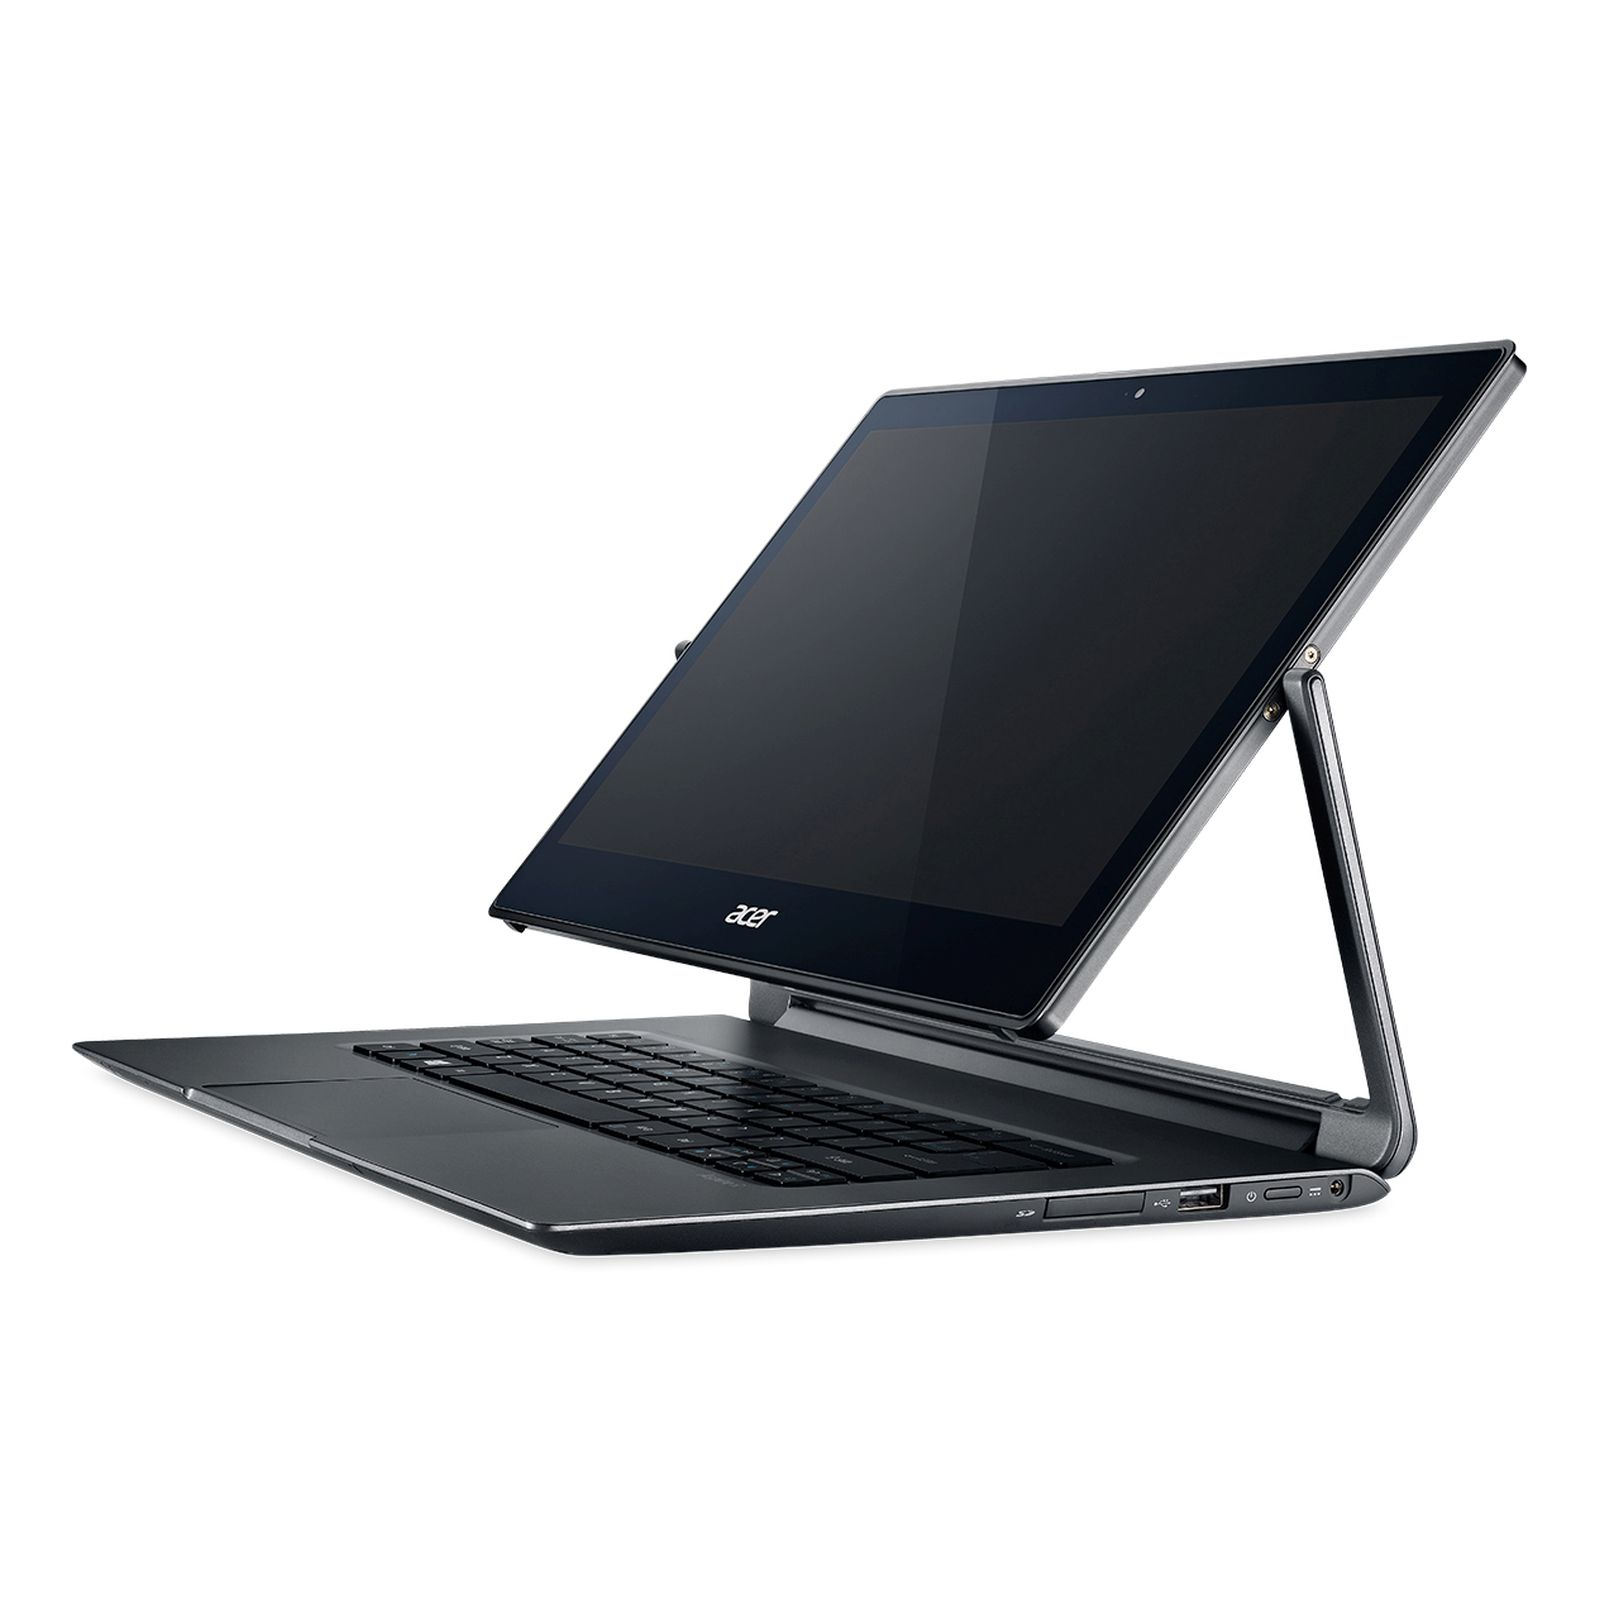 Acer Aspire R7-371T Intel Virtual Button 64 BIT